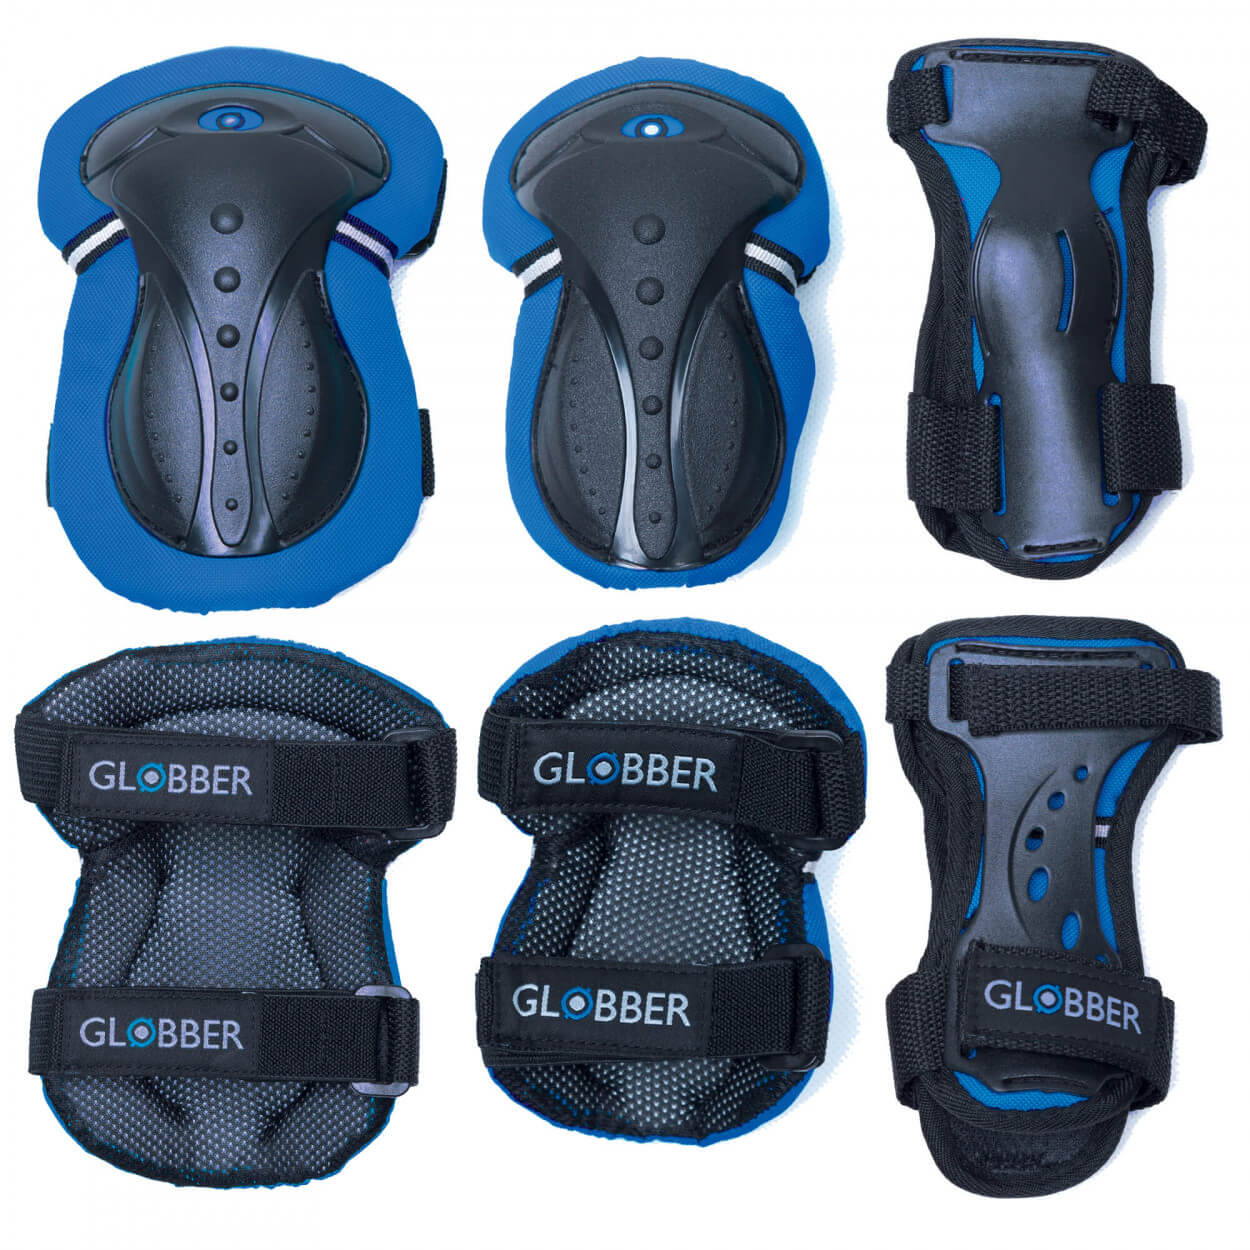 Plum Globber Junior Protective Gear - Blue & Black